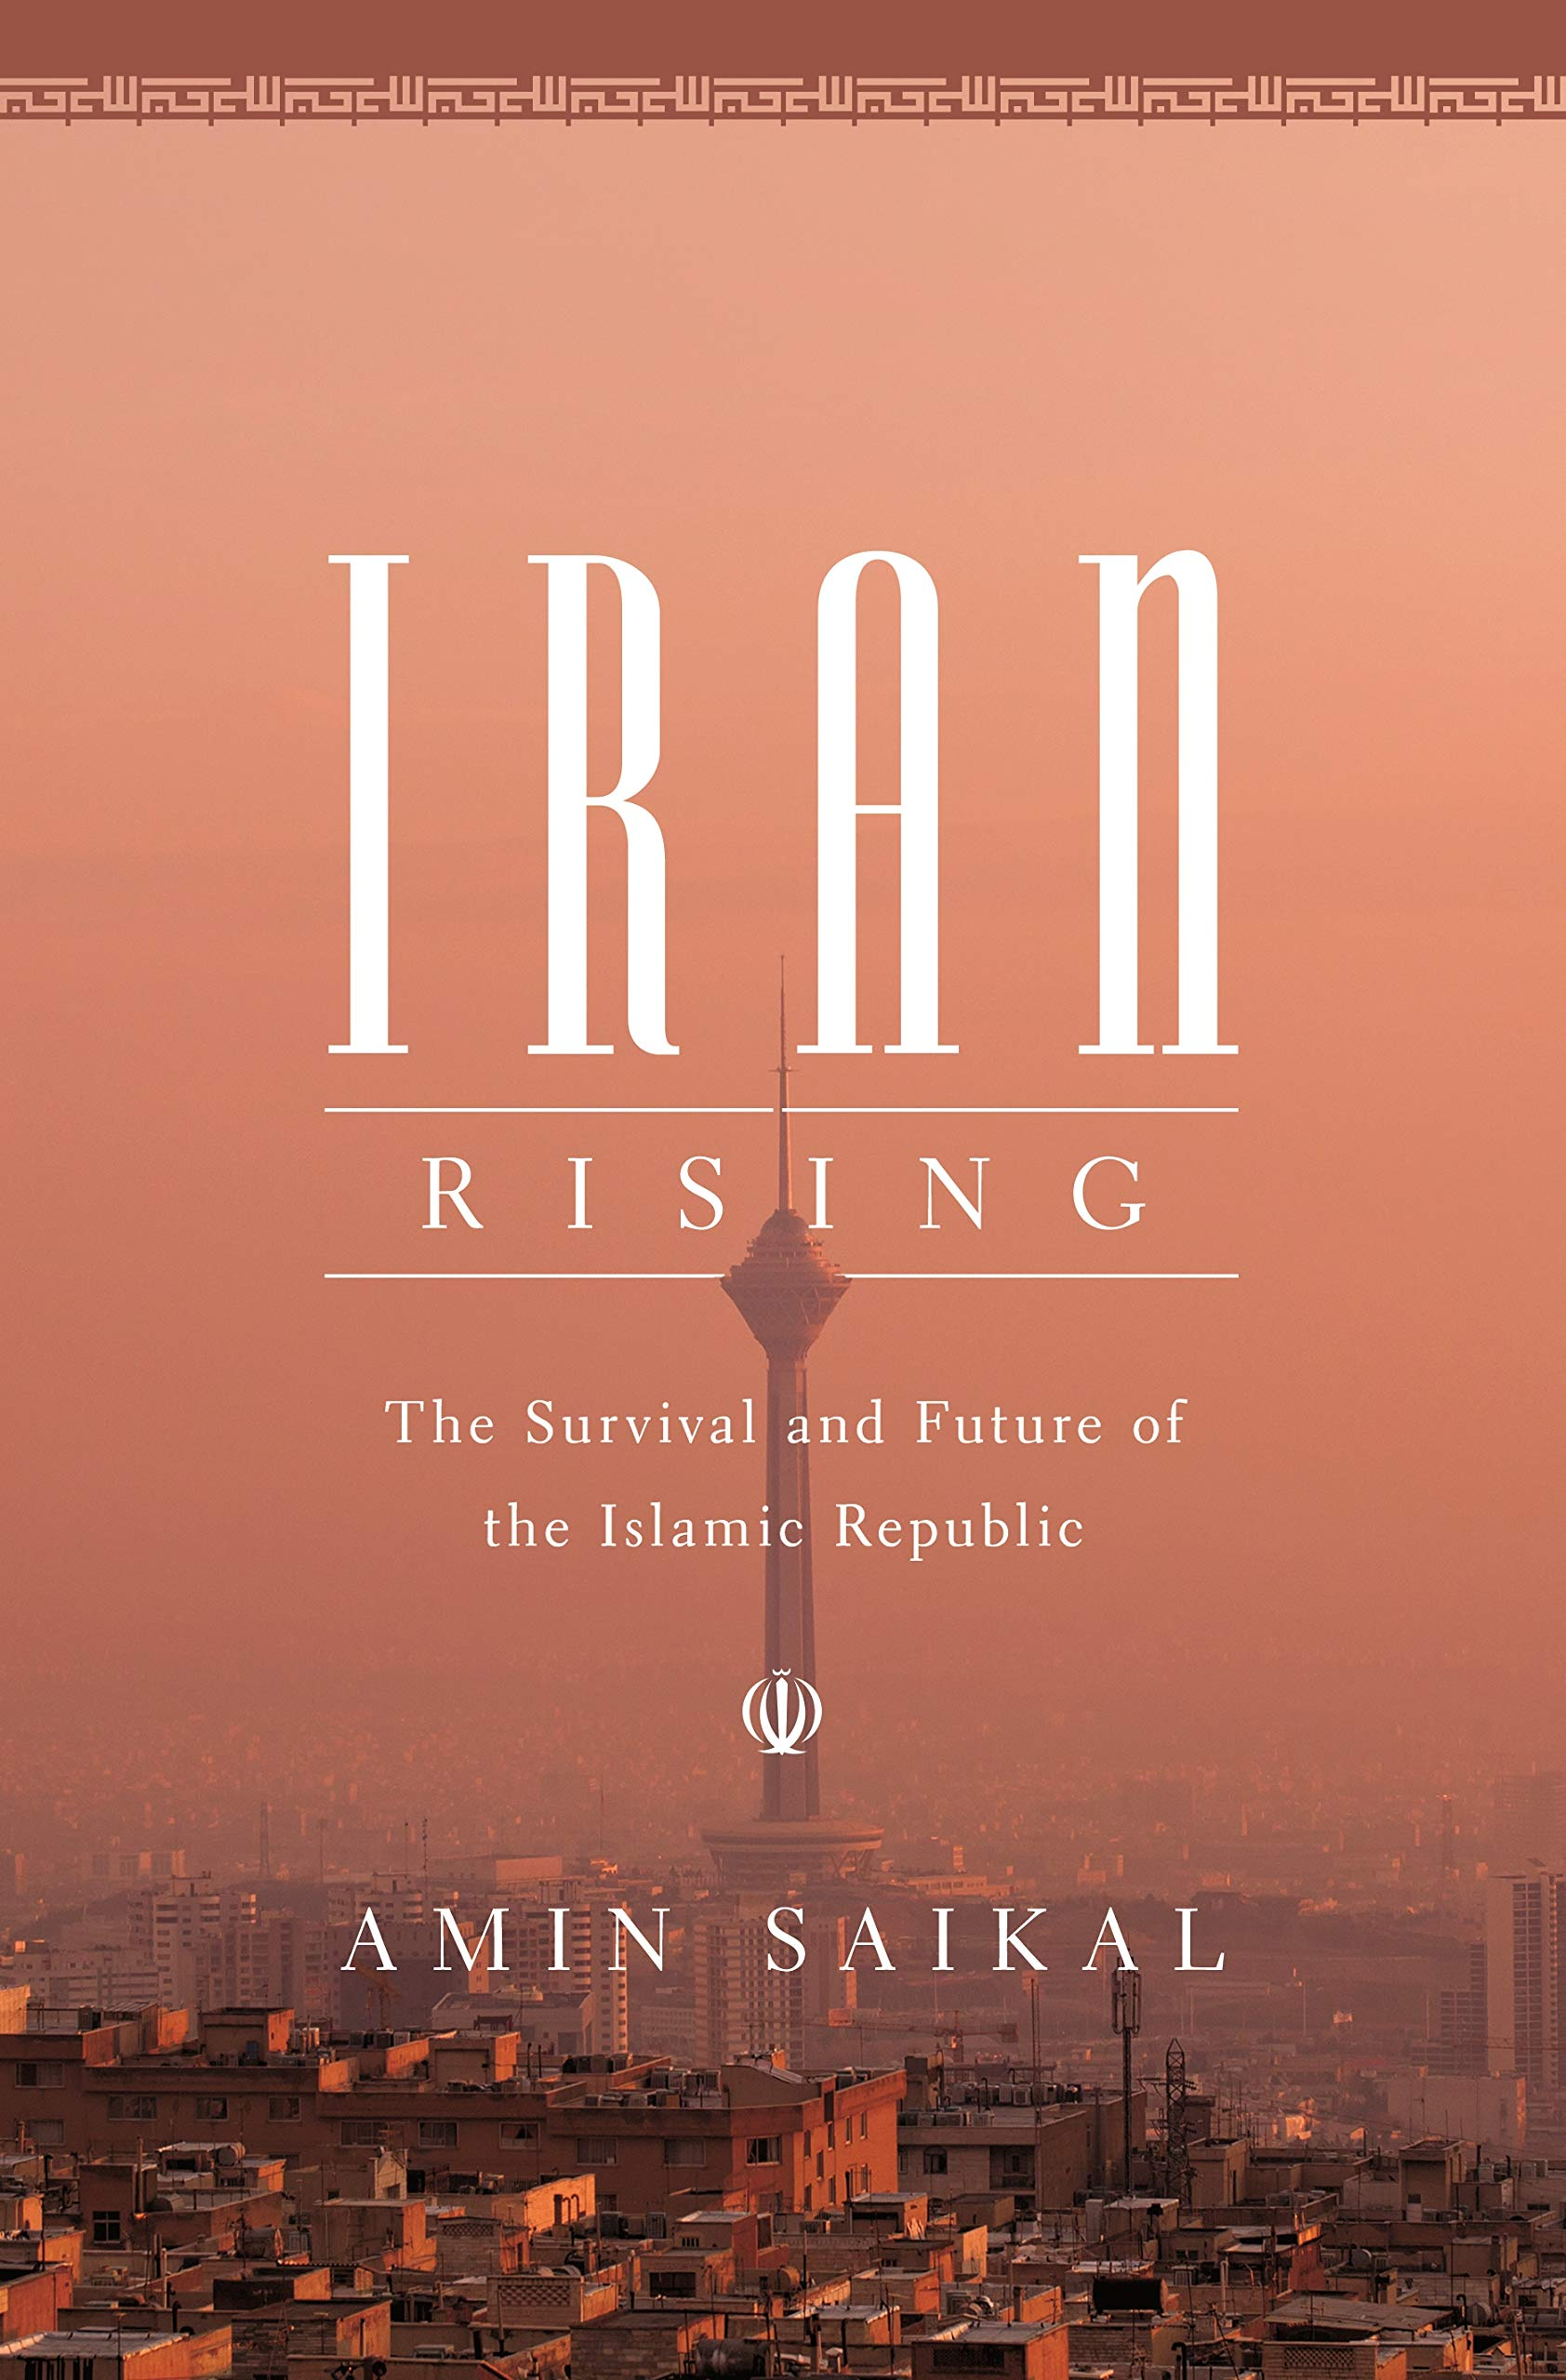 Weekend Roundup: The Iranian Revolution 40 Years Ago Presaged Populist Revolts Today